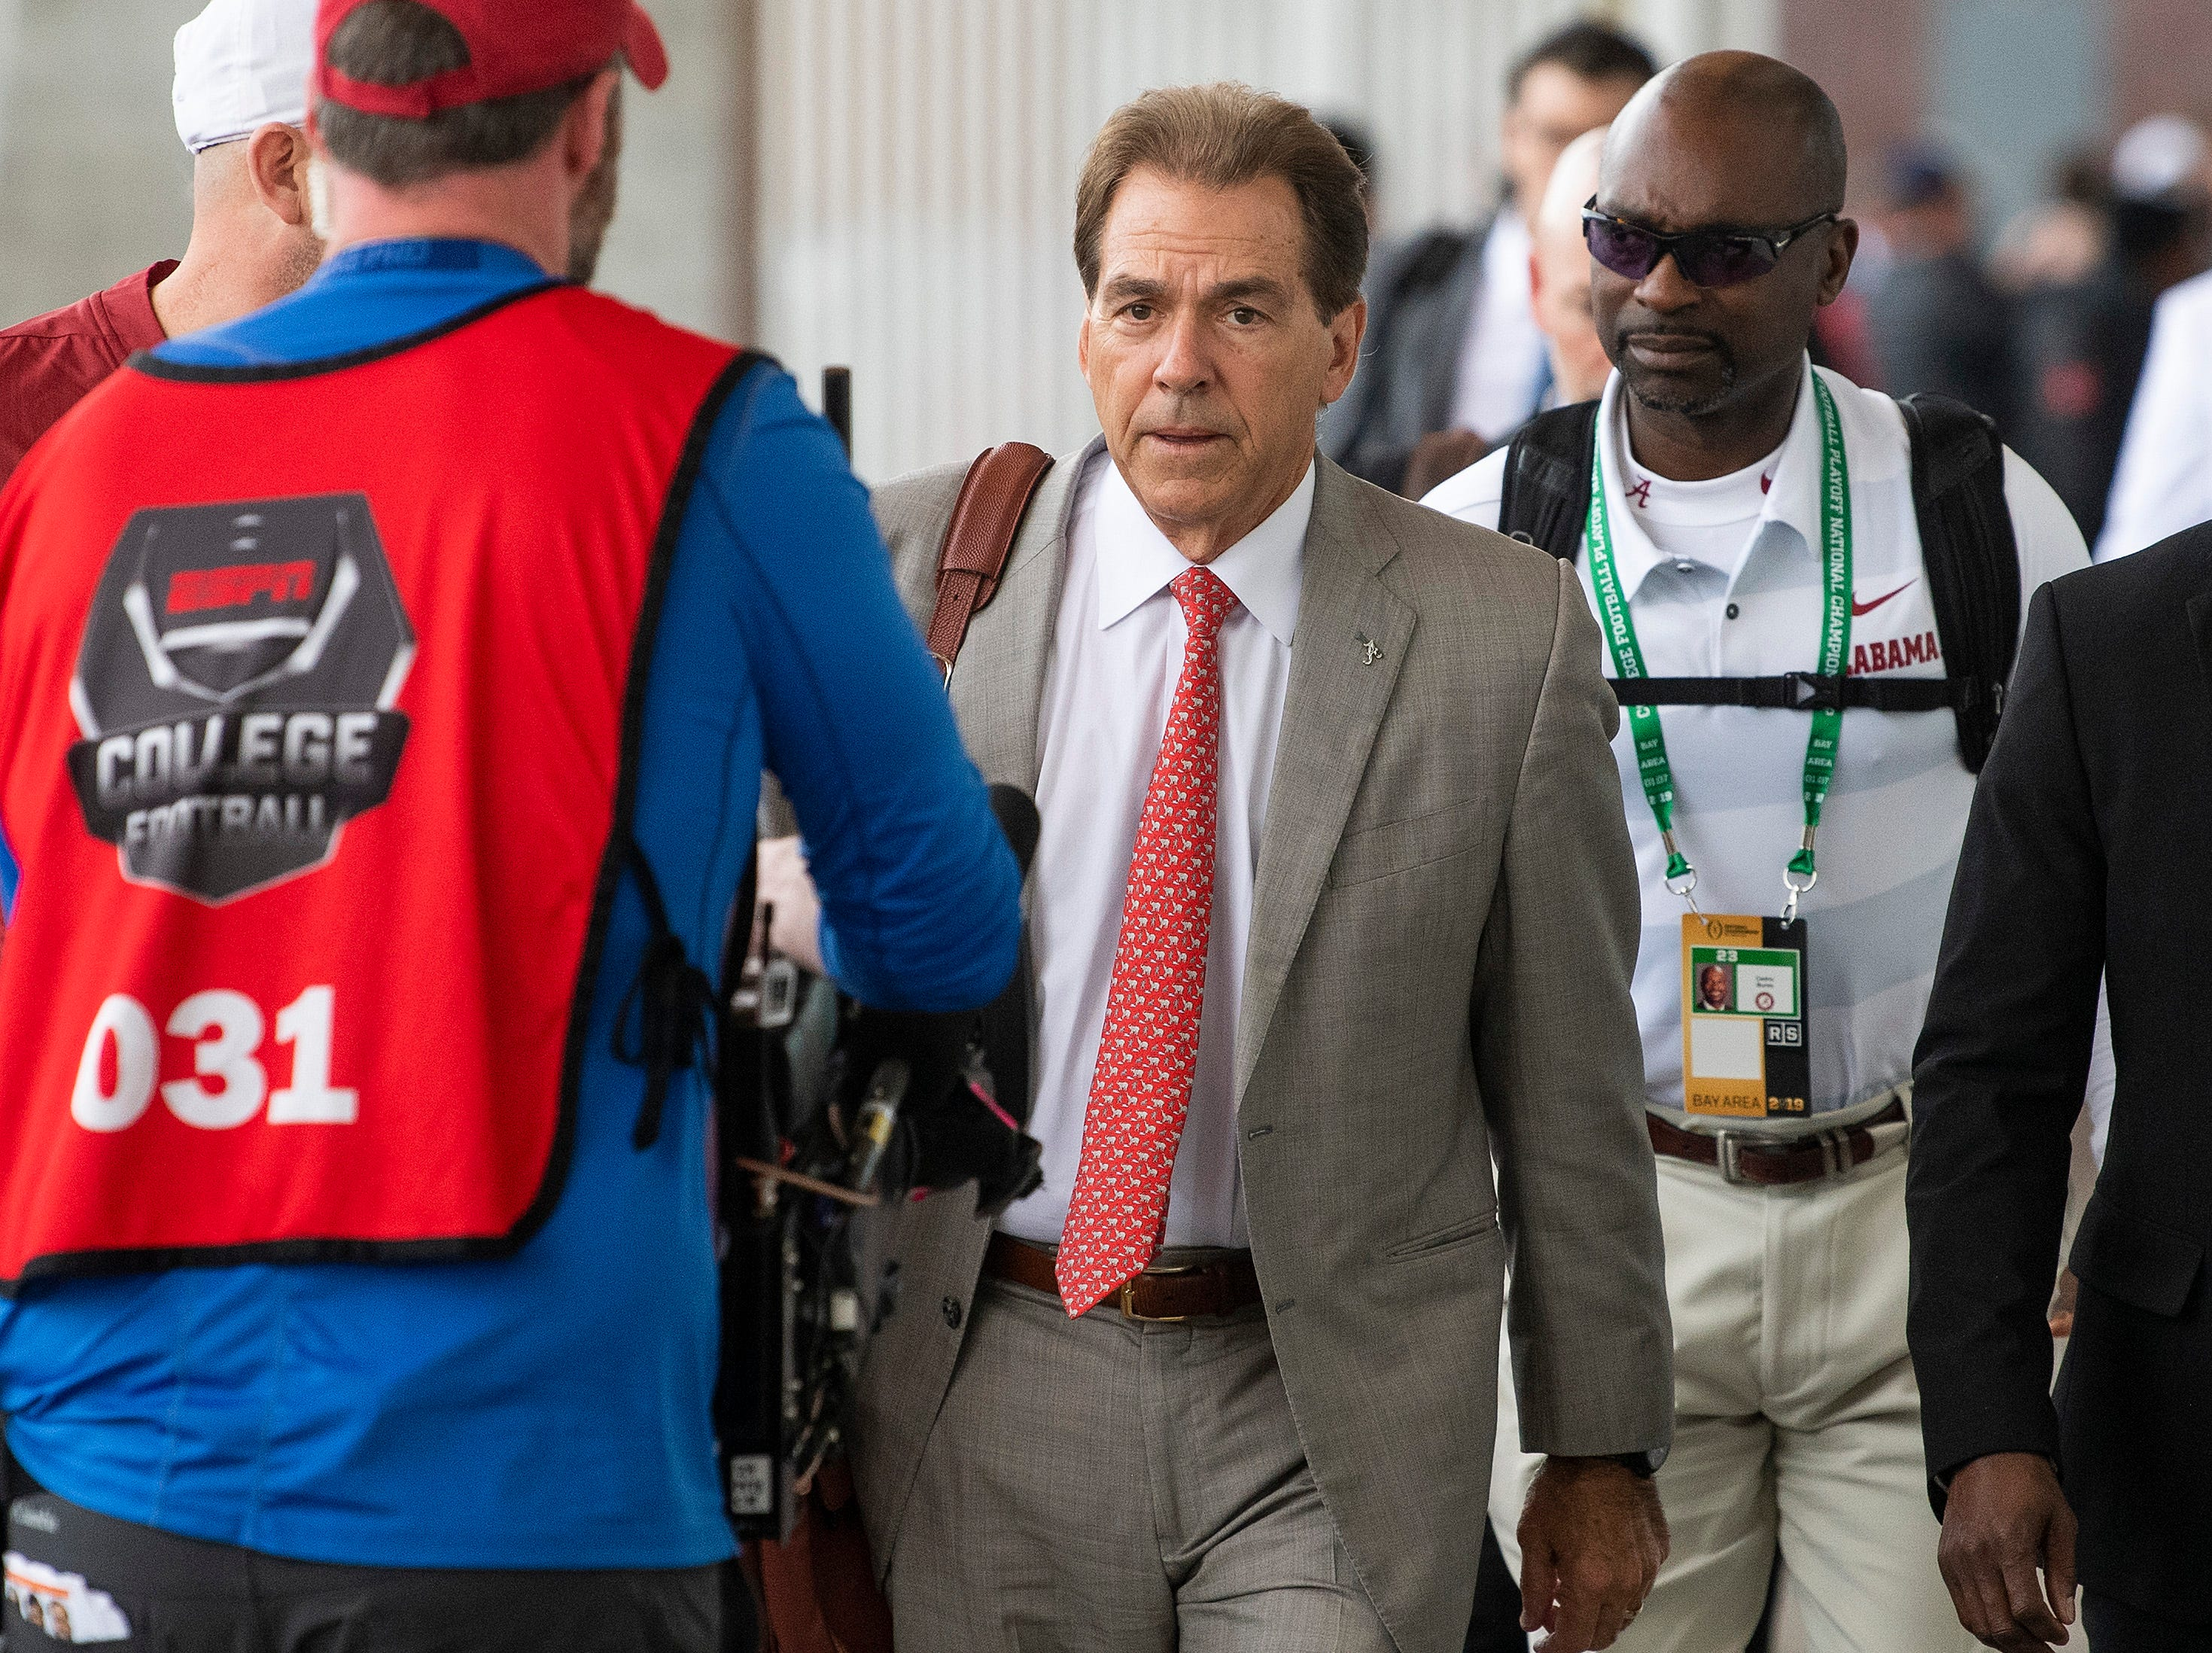 Alabama head coach Nick Saban arrives with his team before the College Football Playoff National Championship game at Levi's Stadium in Santa Clara, Ca., on Monday January 7, 2019.